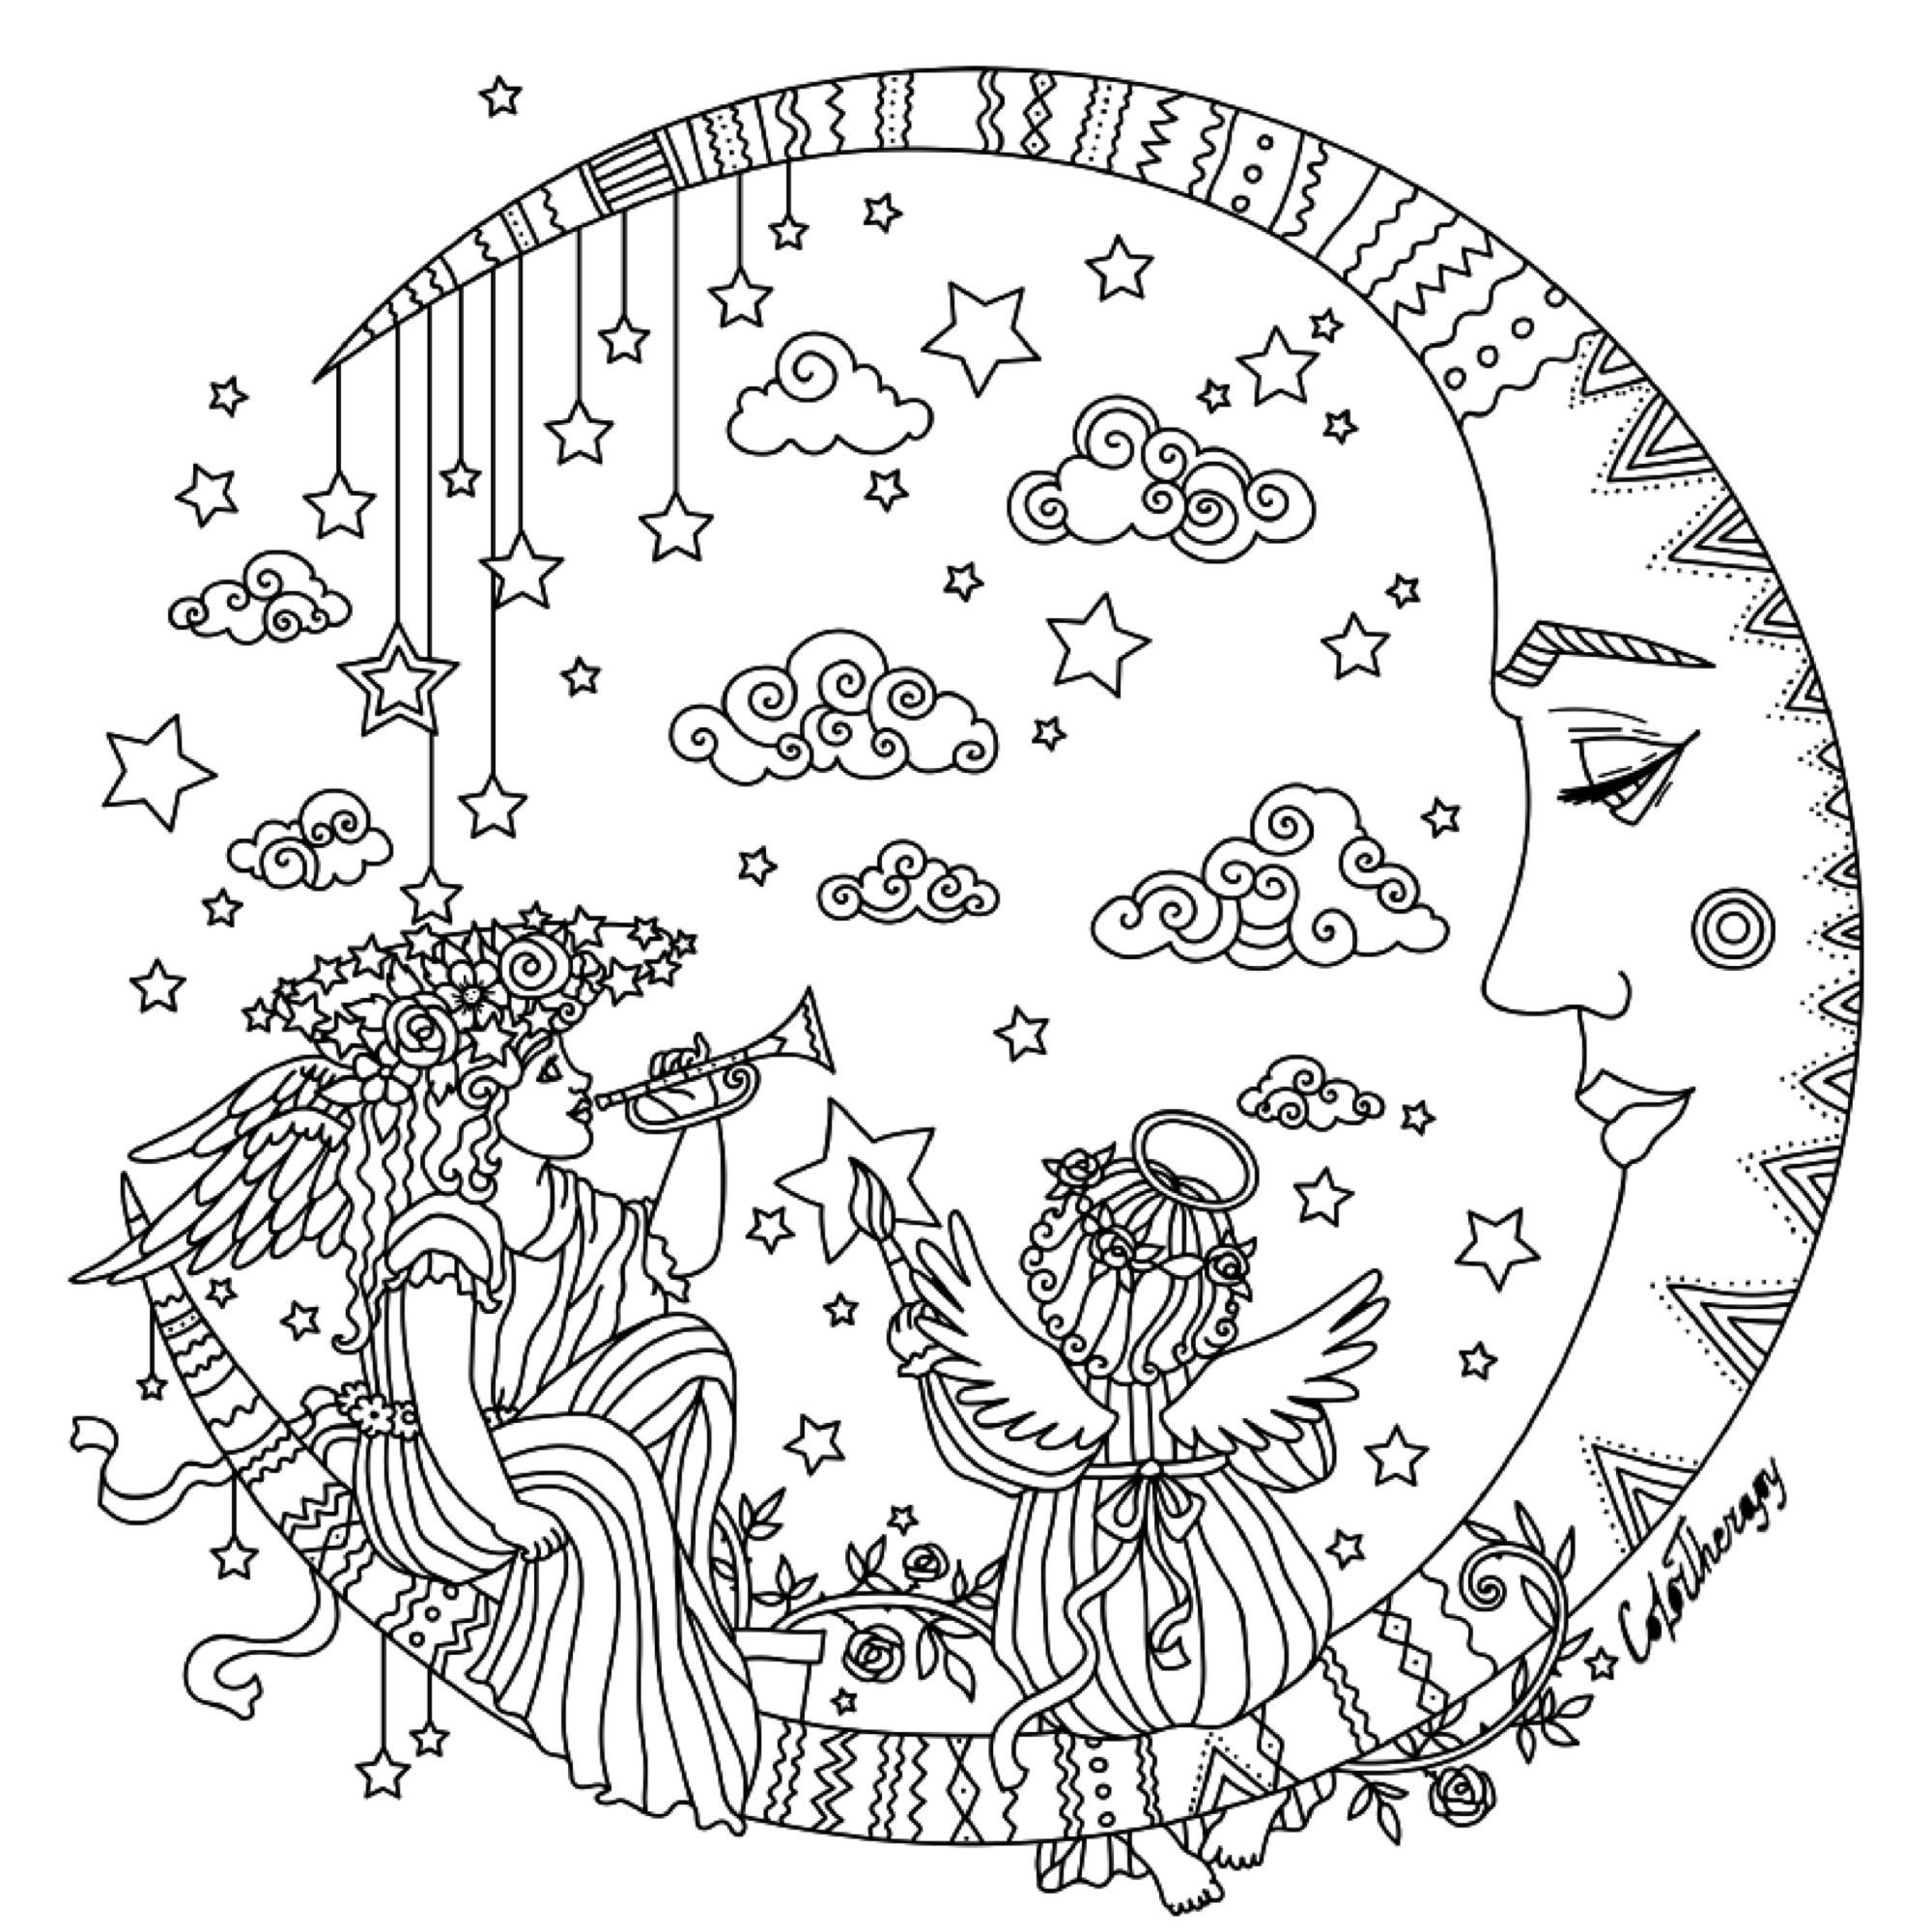 Download Or Print This Amazing Coloring Page Pin By Holly Lynn On Coloring Pages Moon Coloring P Moon Coloring Pages Cute Coloring Pages Cool Coloring Pages